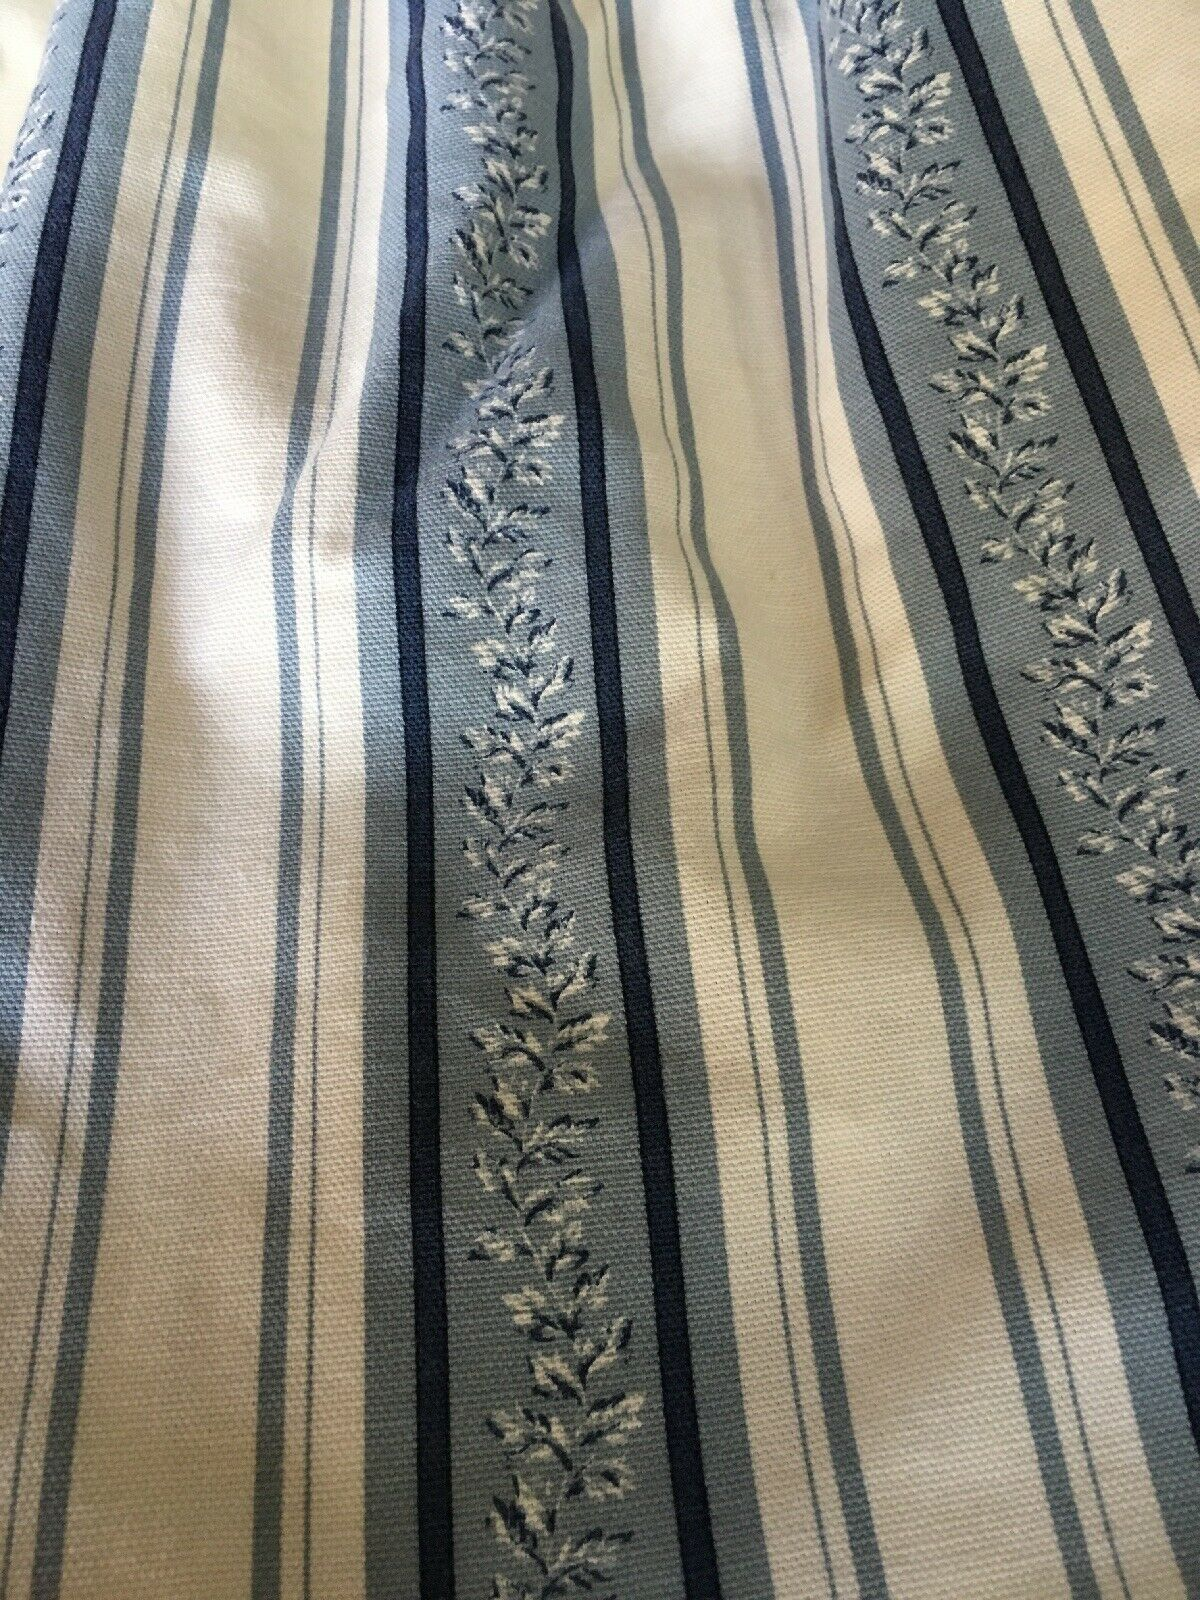 Antique Bed Dust Ruffle Bedskirt bluee White Stripes Floral Flowers Cotton 48x72